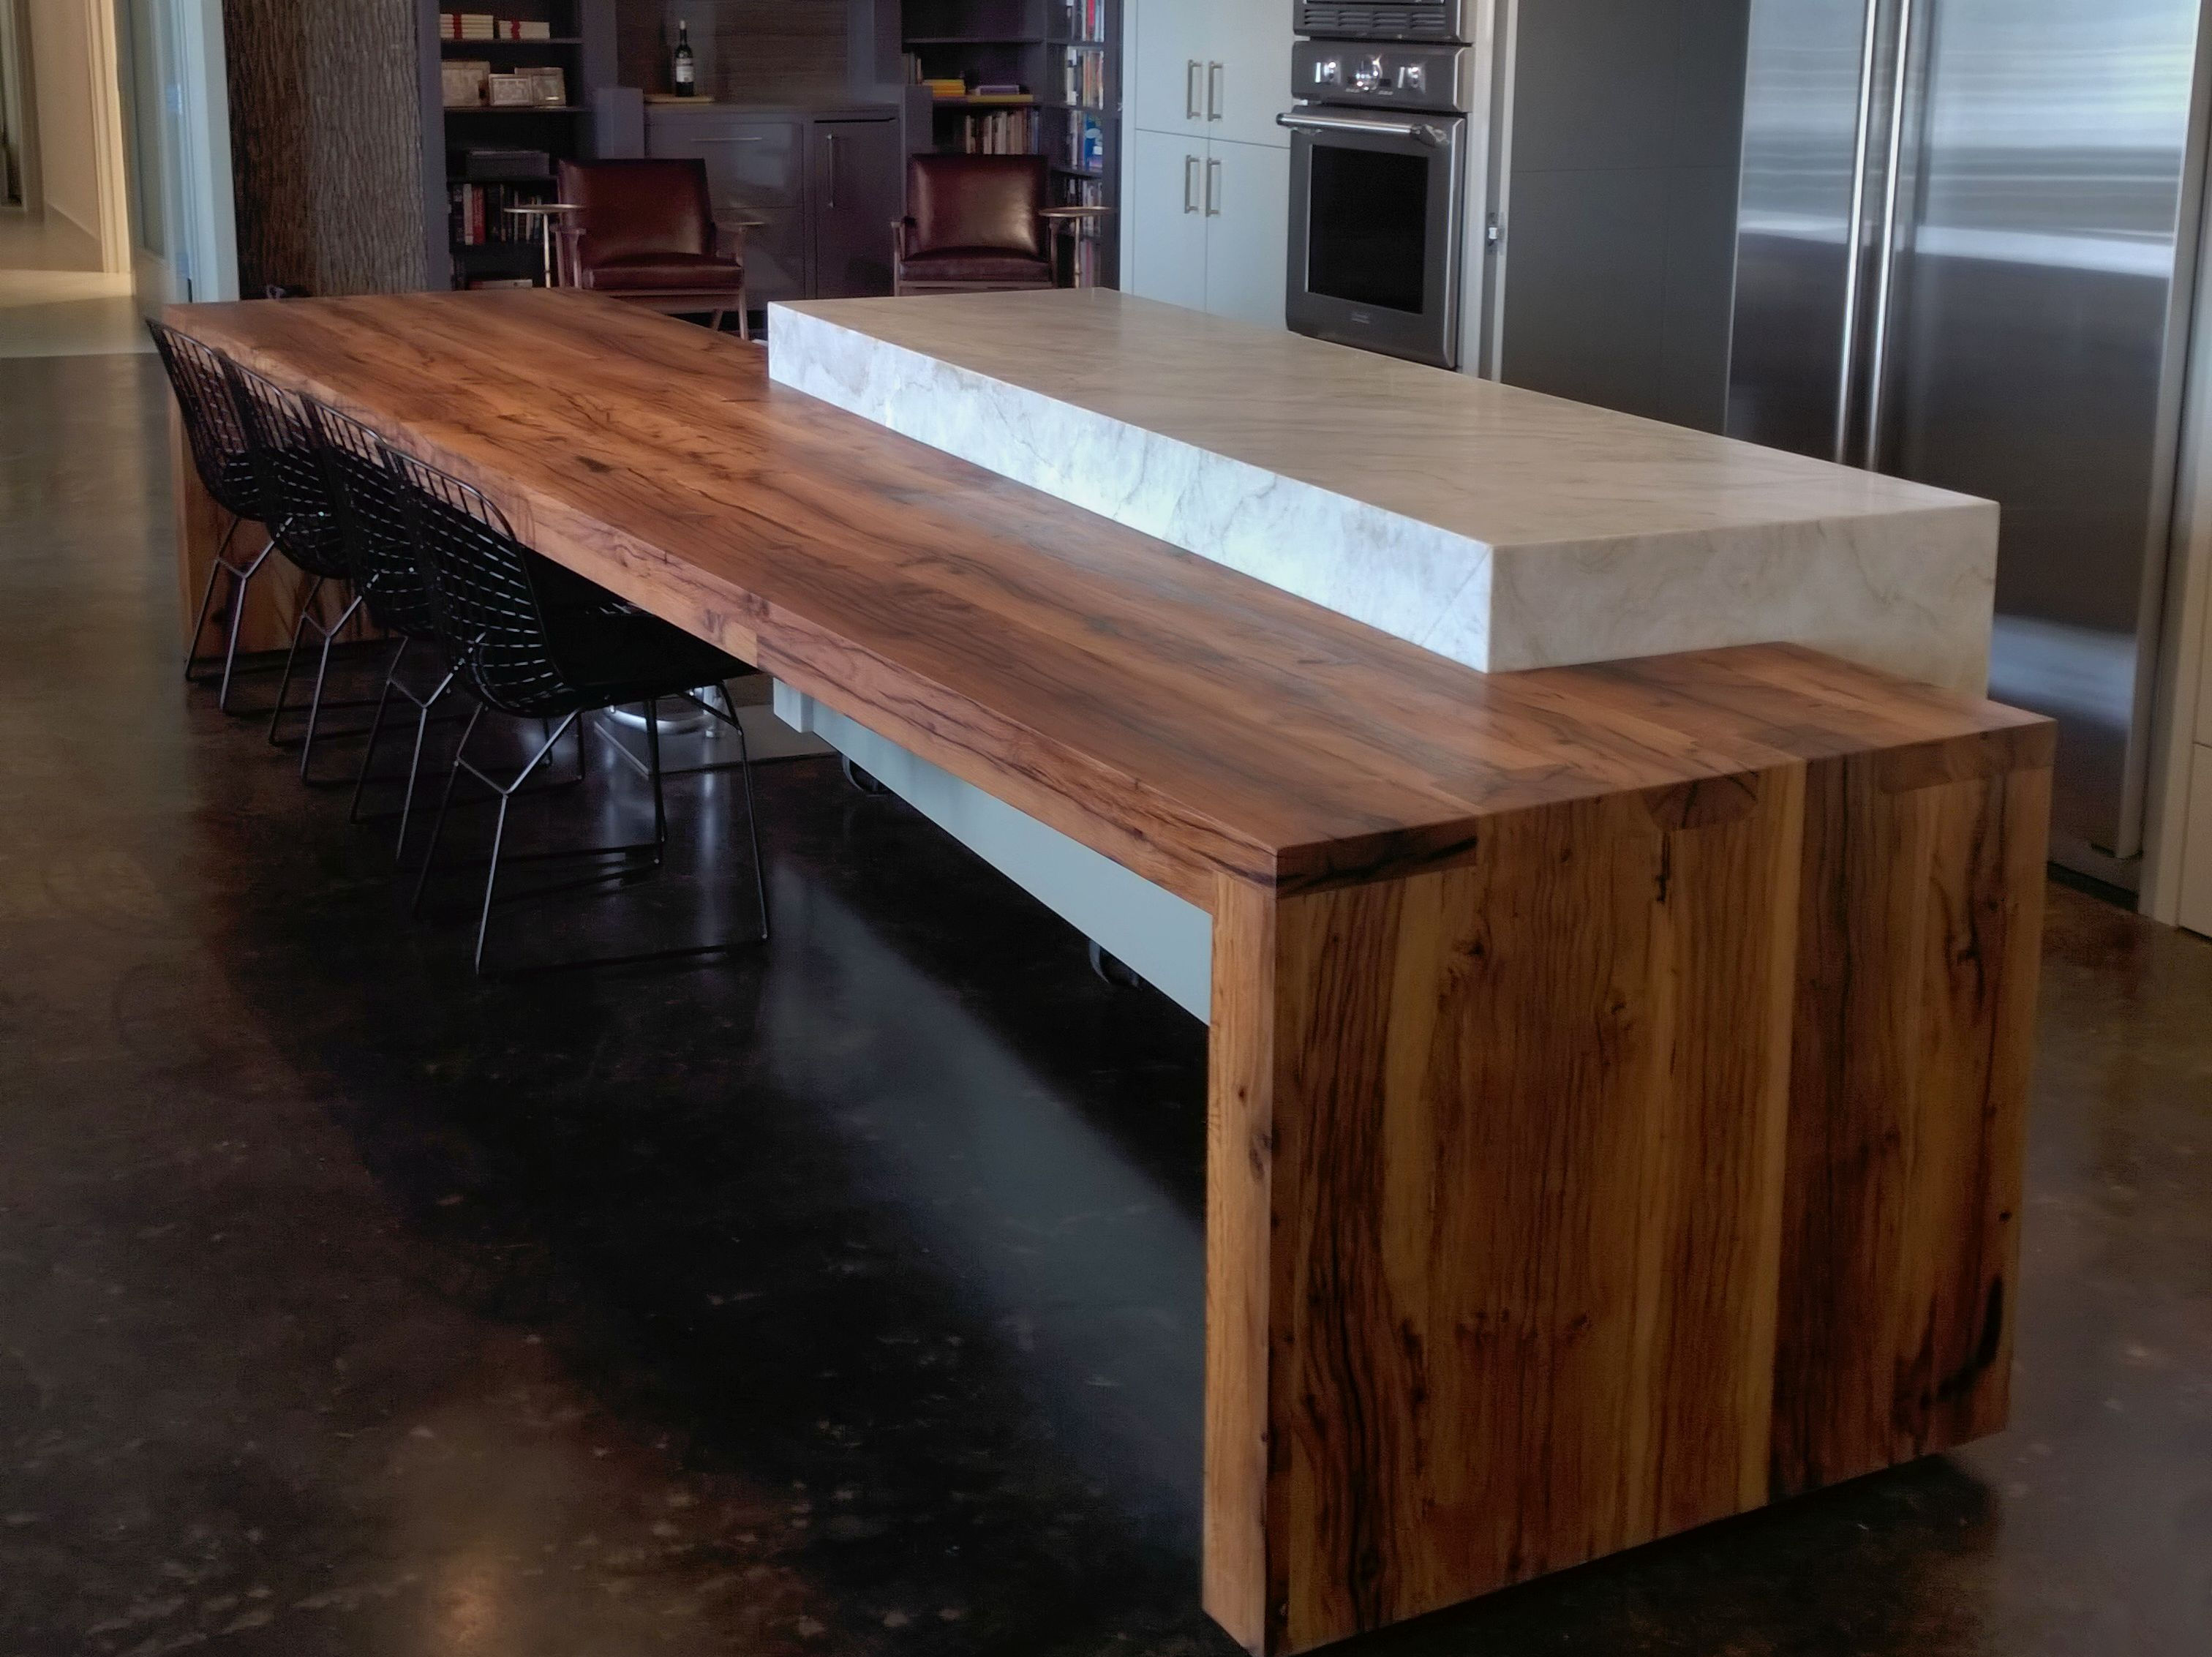 Reclaimed White Oak Wood Countertop Photo Gallery By